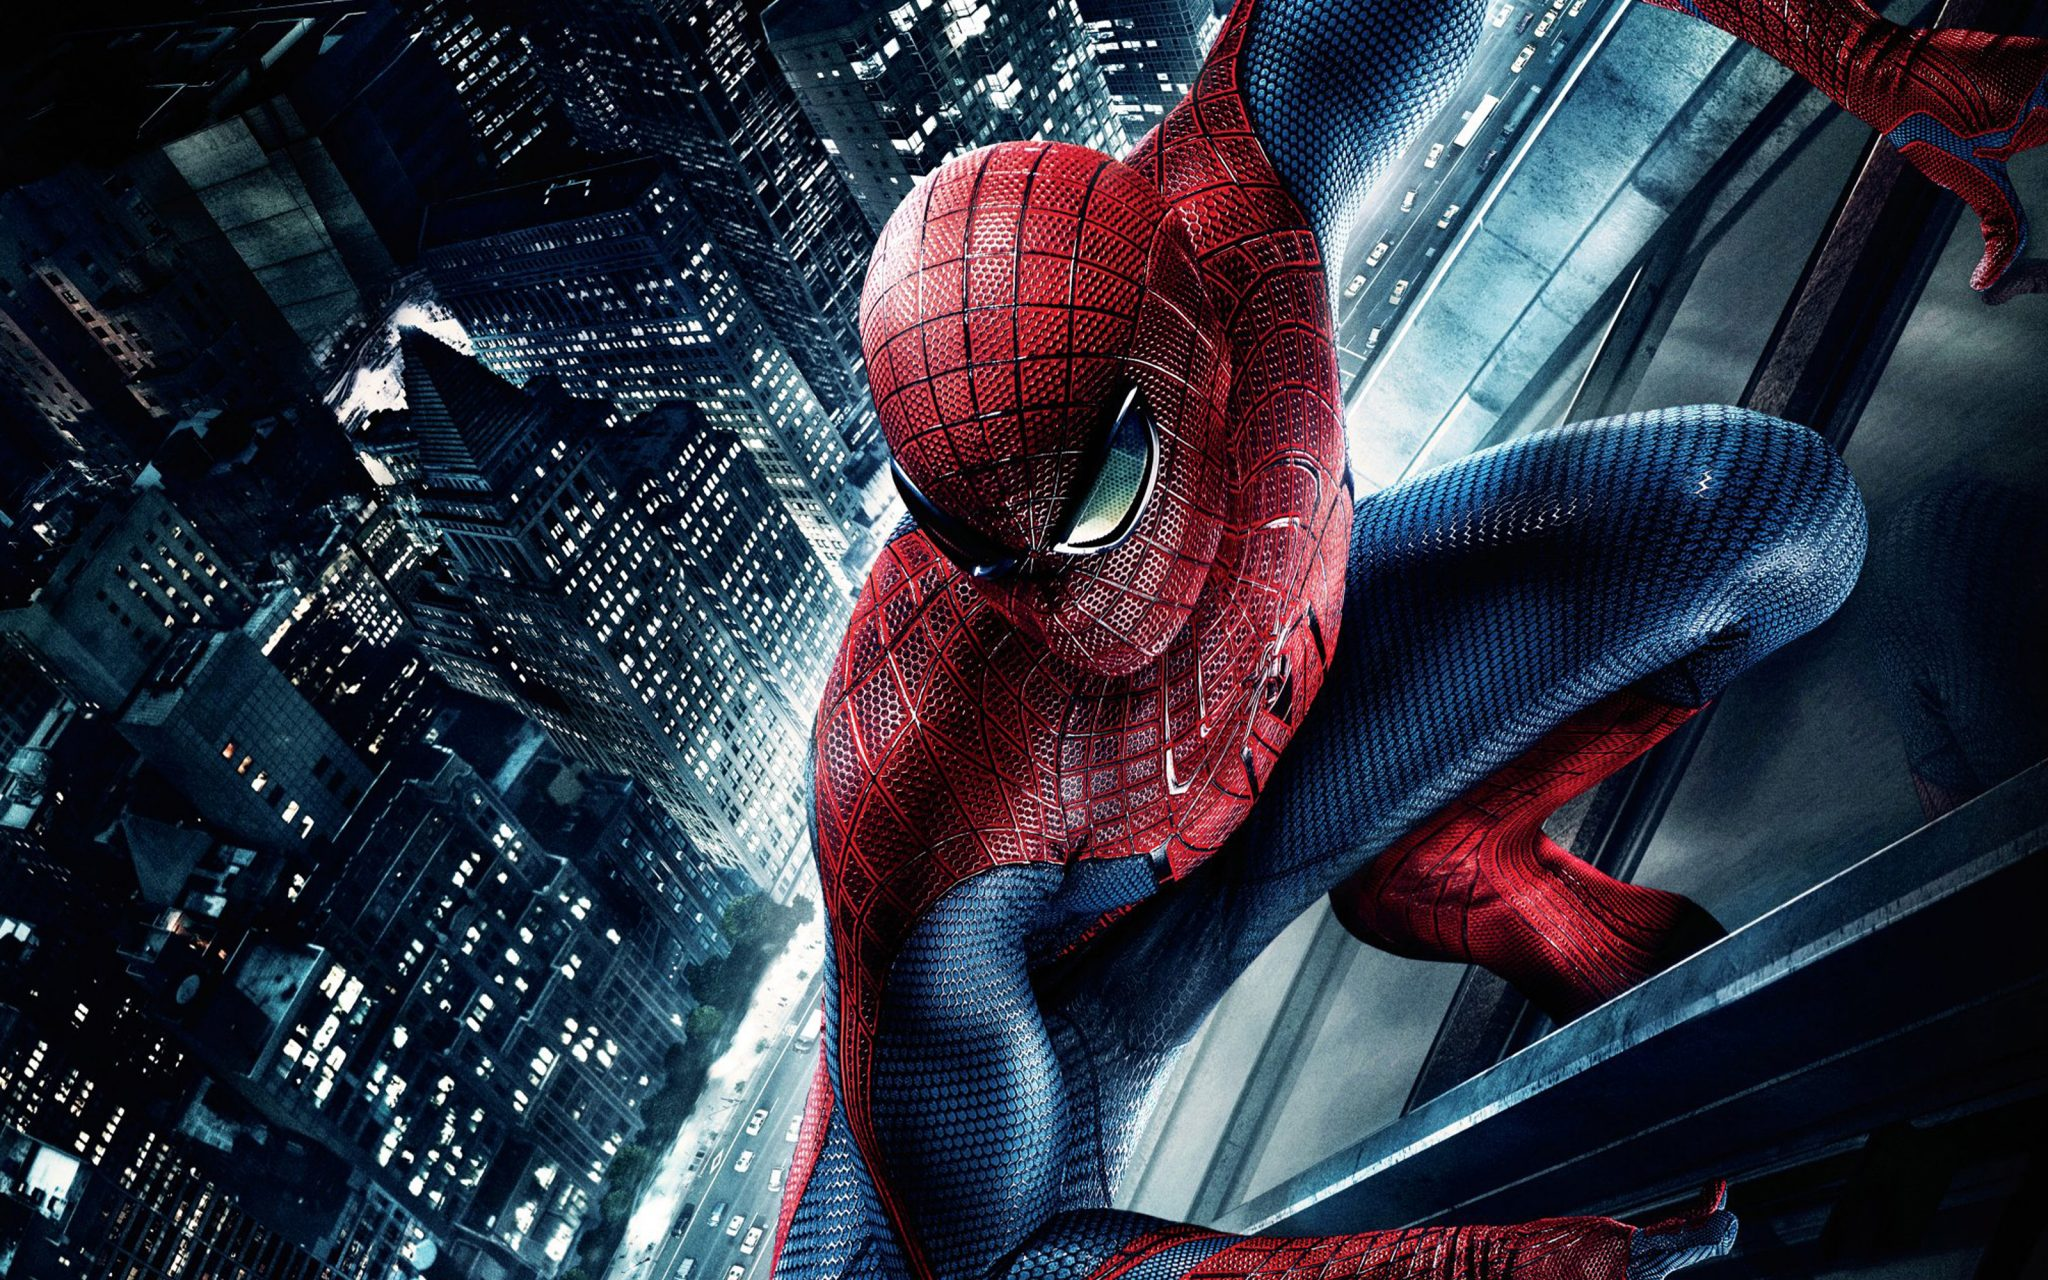 5 actors who could play the new Spider-Man